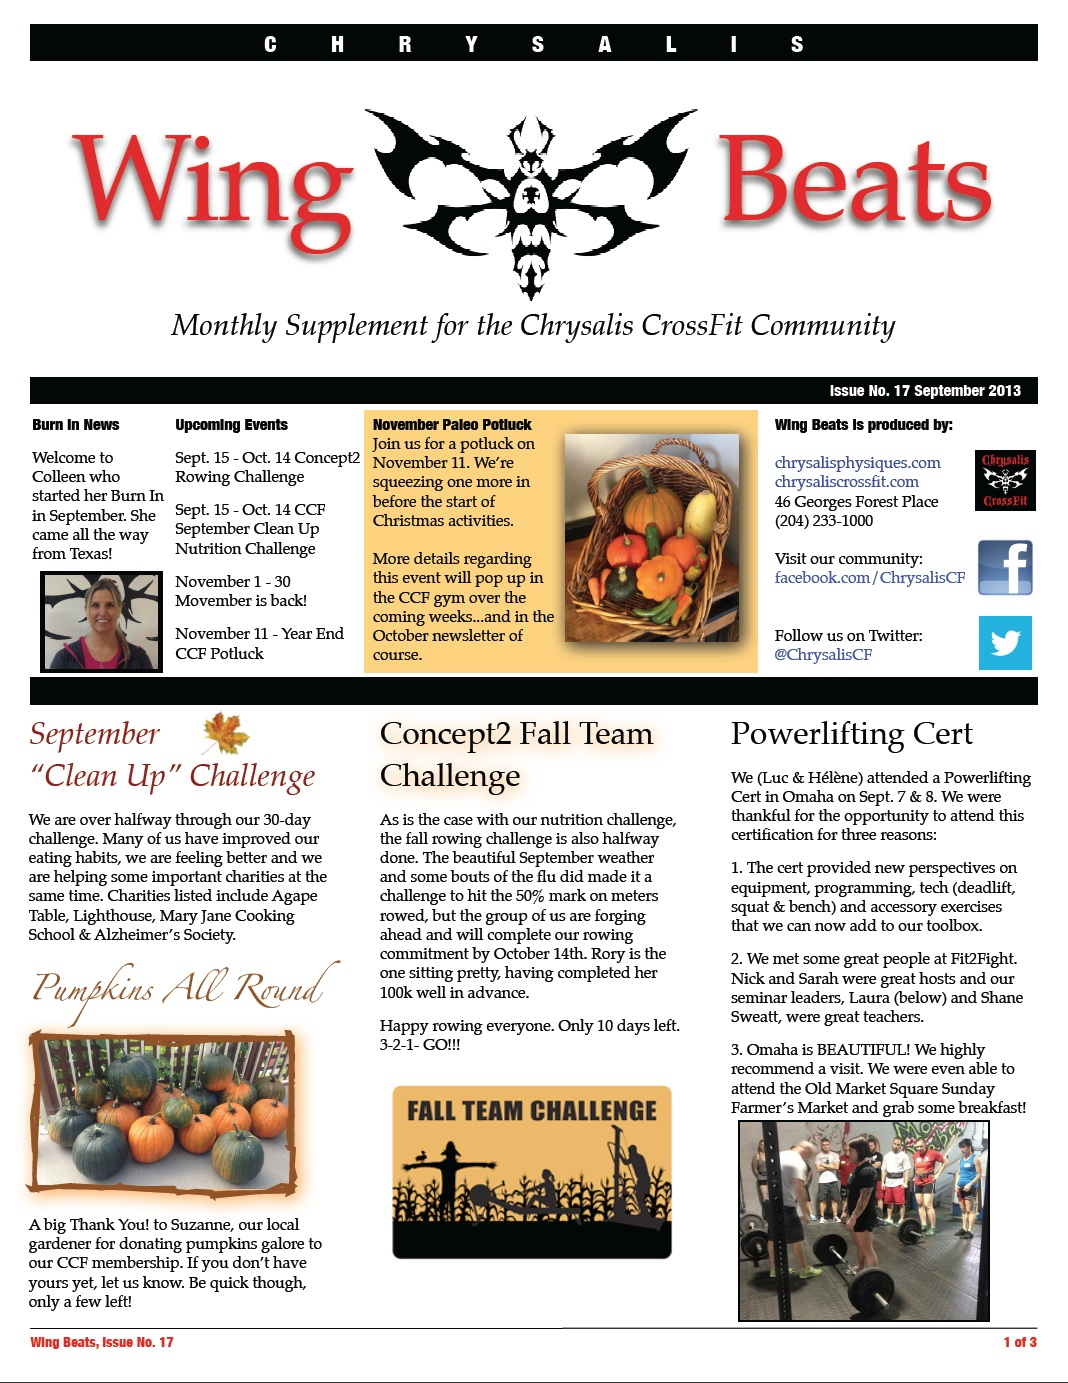 WingBeats Issue #17 - September 2013